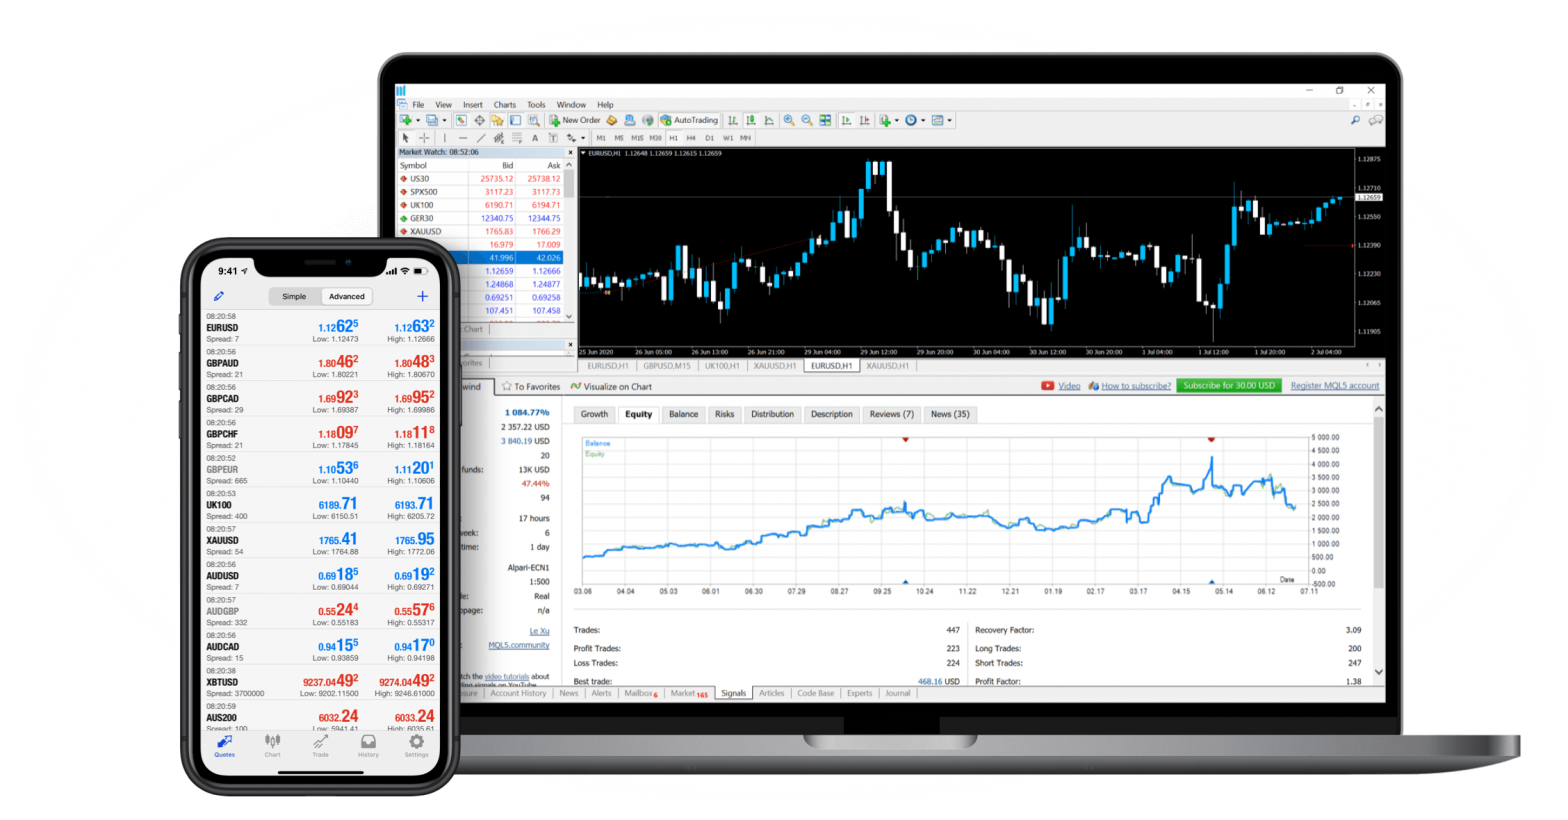 Top Of The Line Tools and Add-ons Used In MetaTrader 5